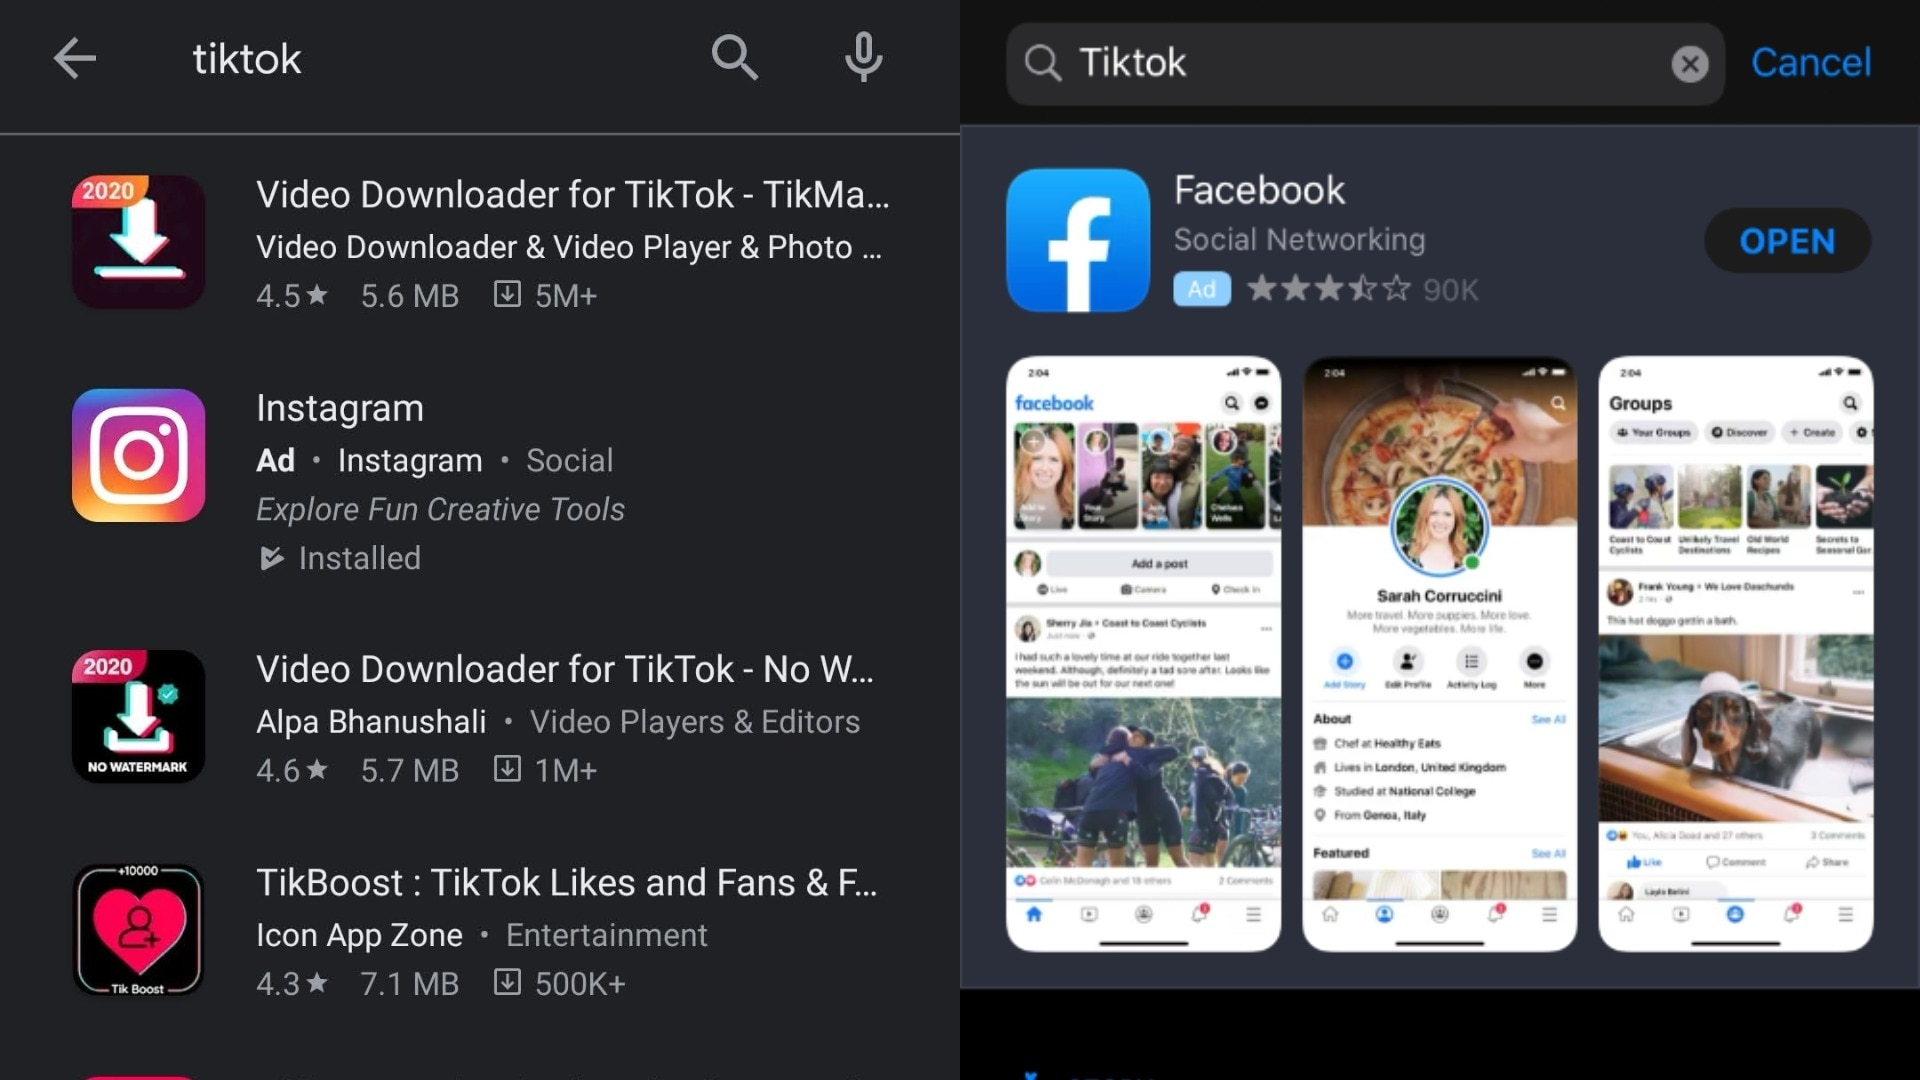 TikTok doesn't show up in app store search results